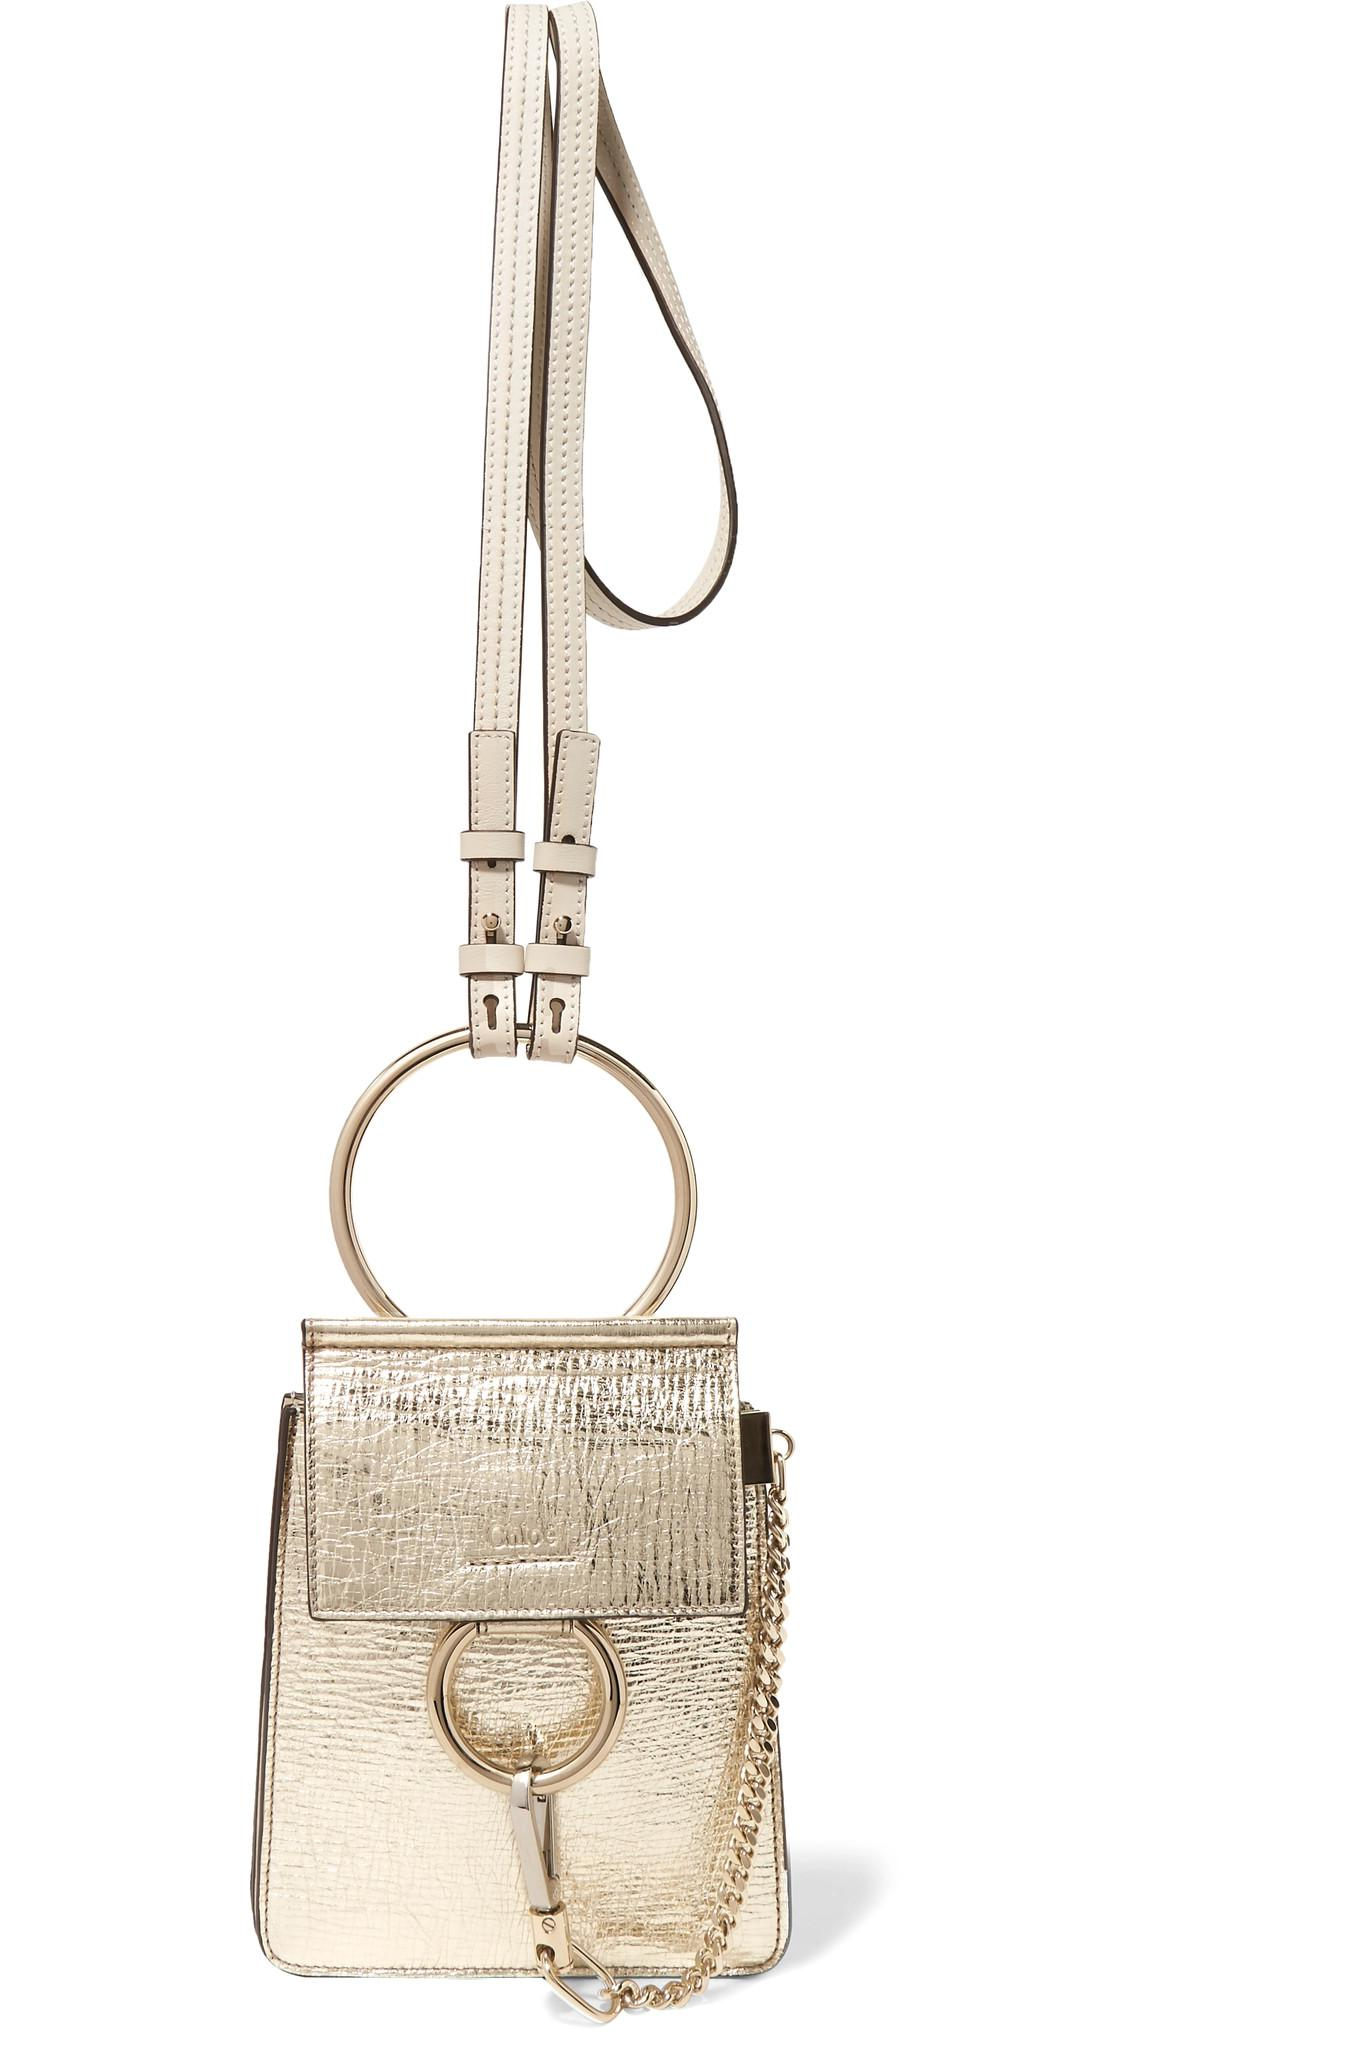 41193284167f0 Chloé Faye Bracelet Mini Metallic Cracked-leather Shoulder Bag in ...